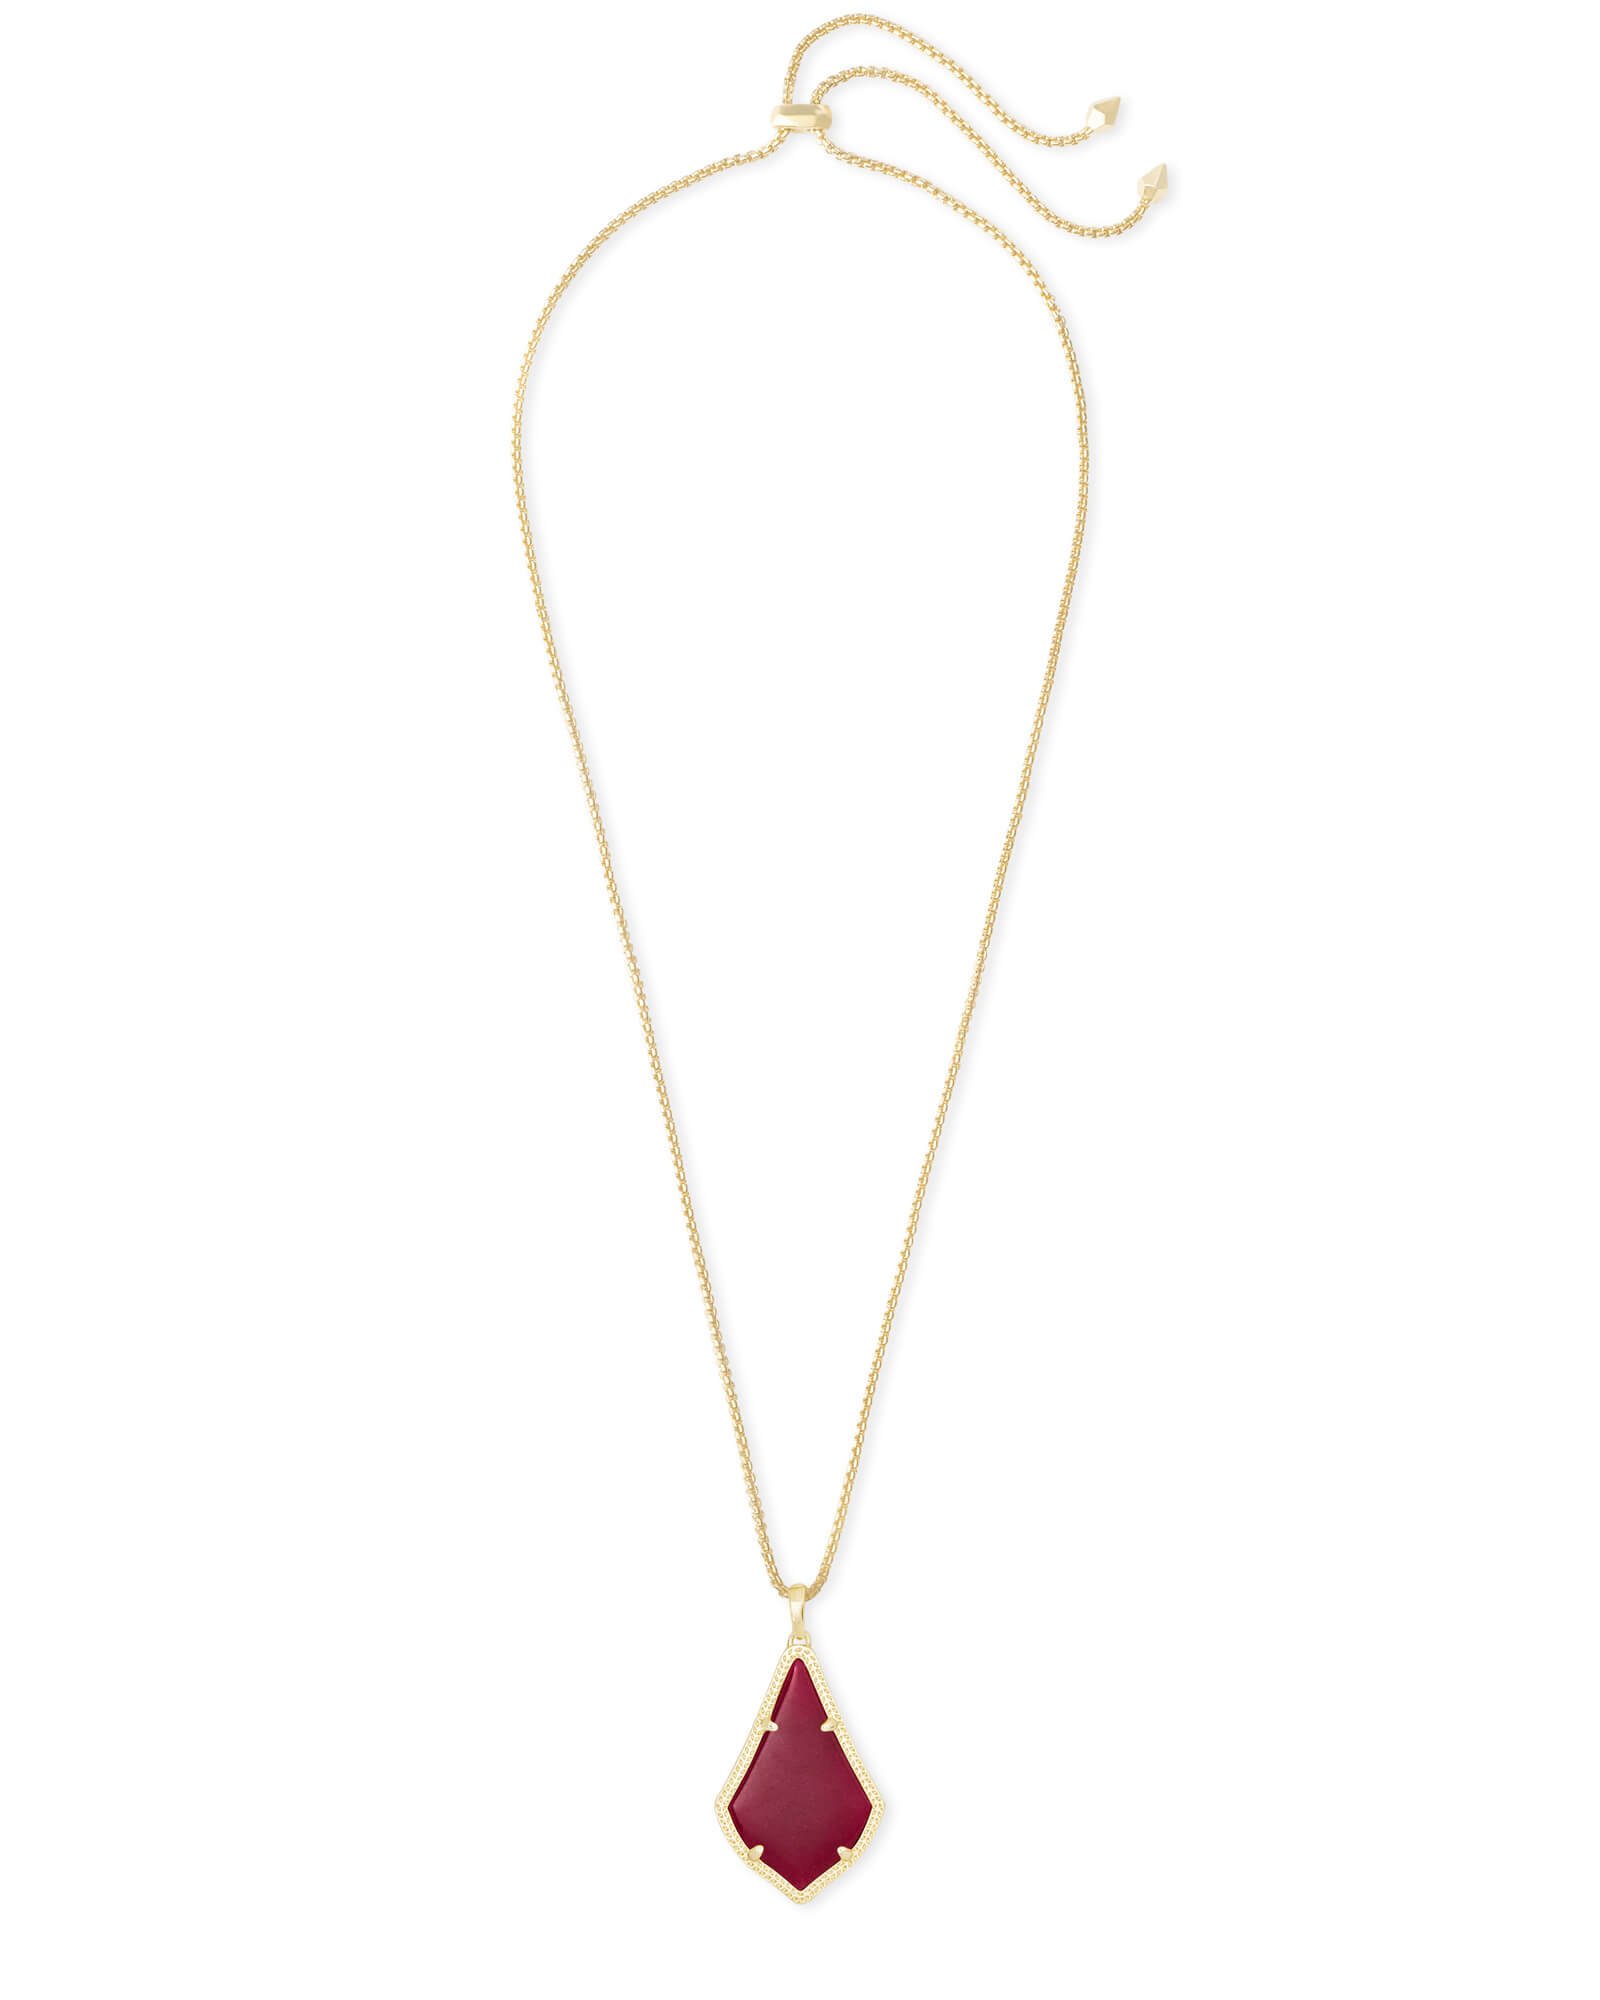 Alex Gold Pendant Necklace in Maroon Jade